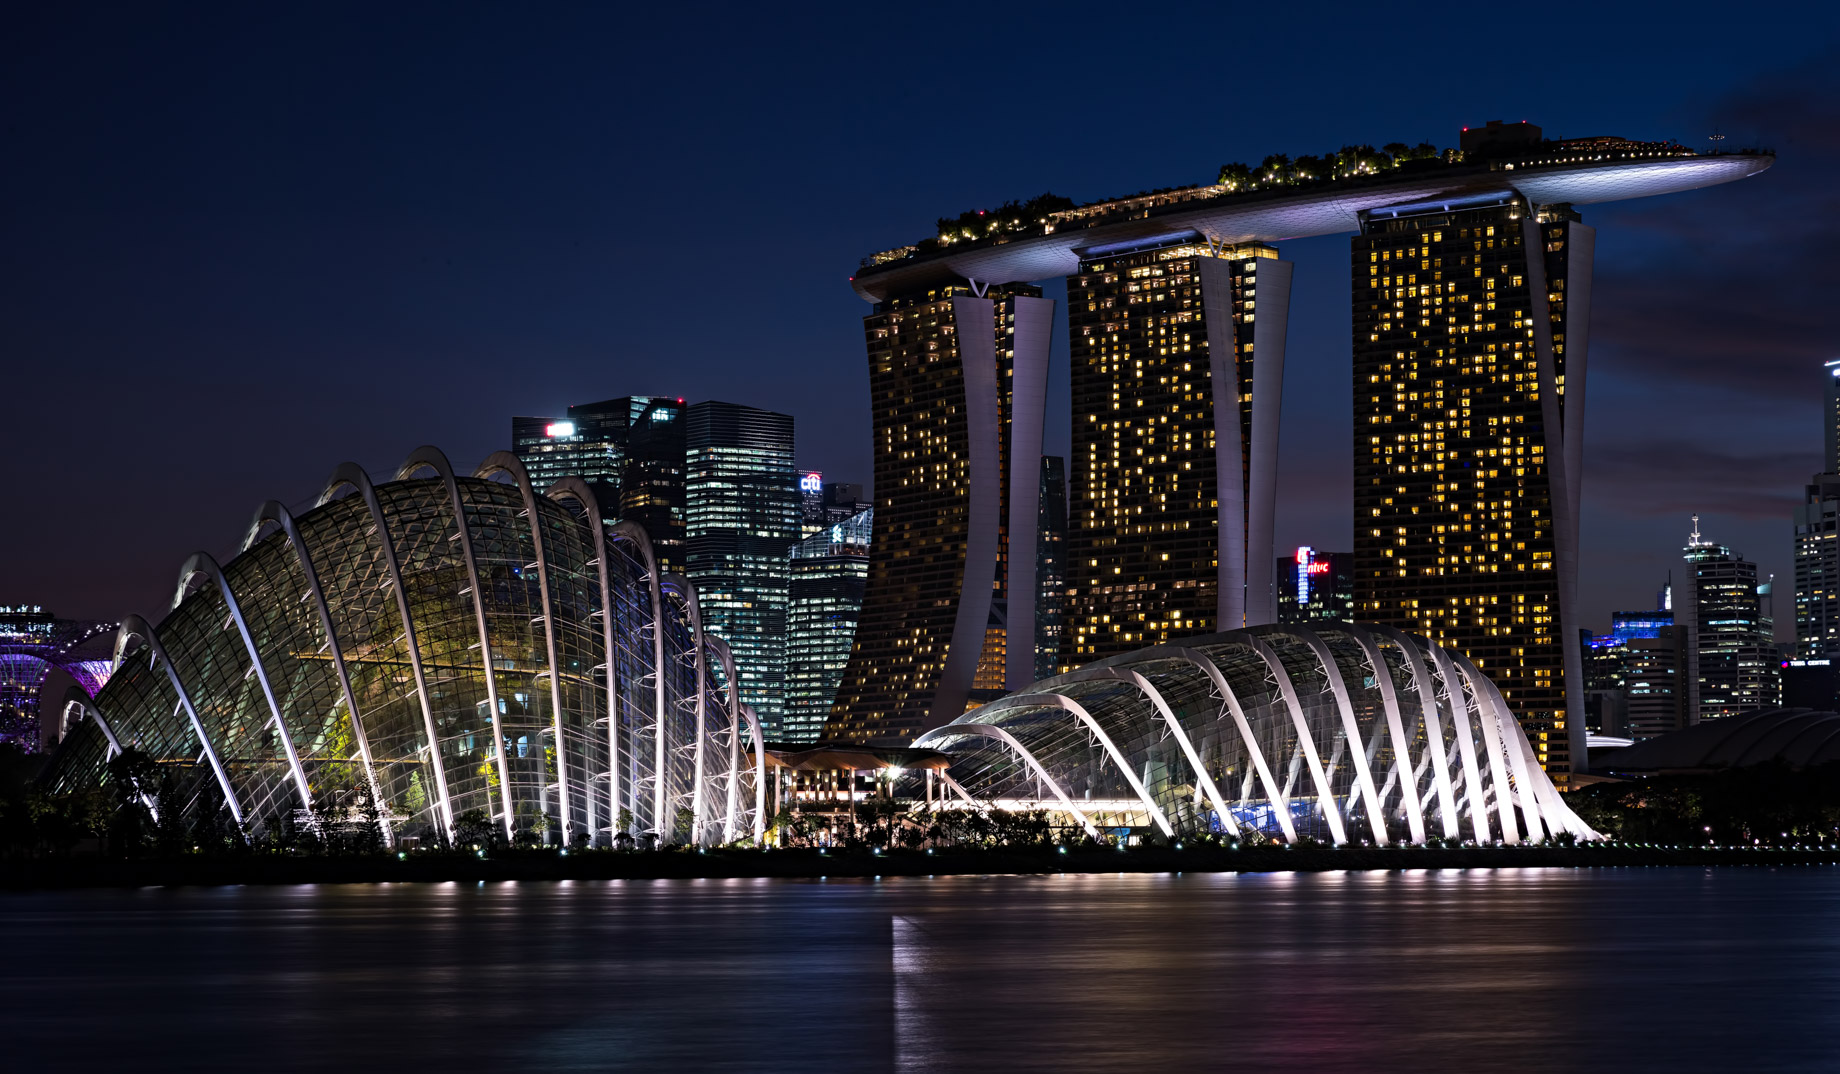 Marina Bay Sands Singapore – Billion Dollar Buildings – The Most Expensive Casino Properties in the World